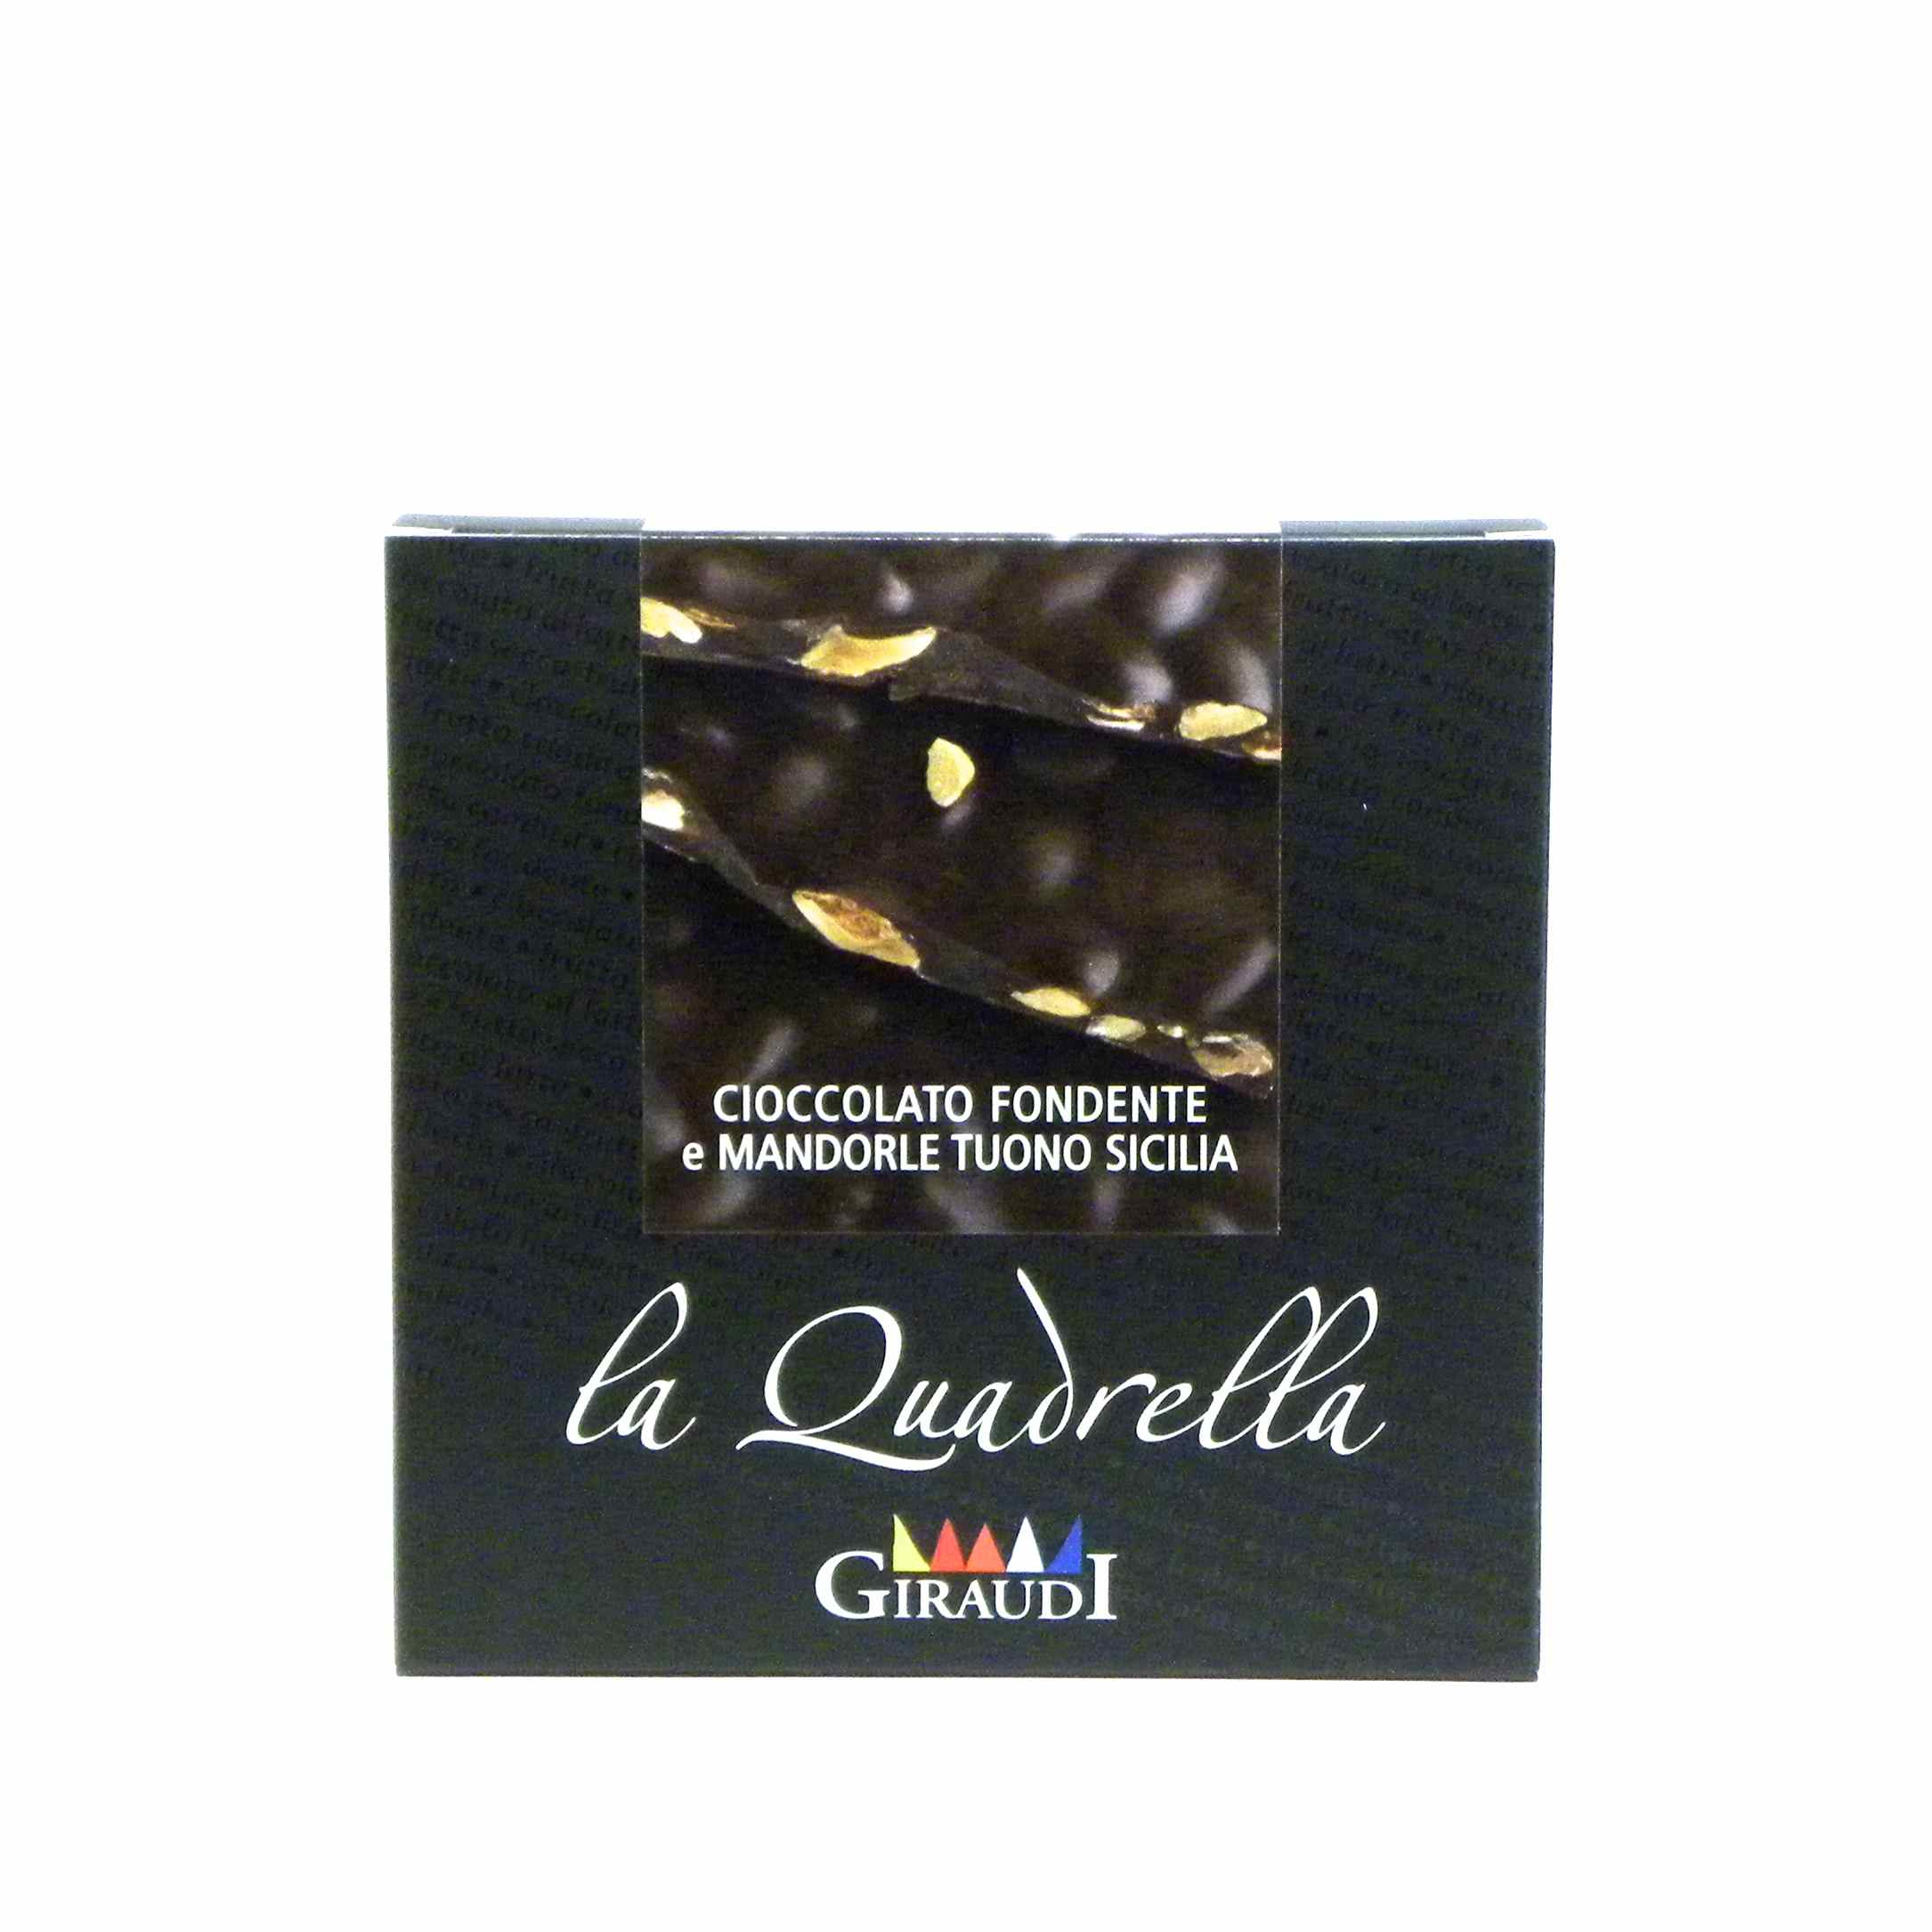 Giraudi quadrella mandorle cioccolato fondente – Giraudi quadrella dark chocolate almonds – Gustorotondo – Italian food boutique